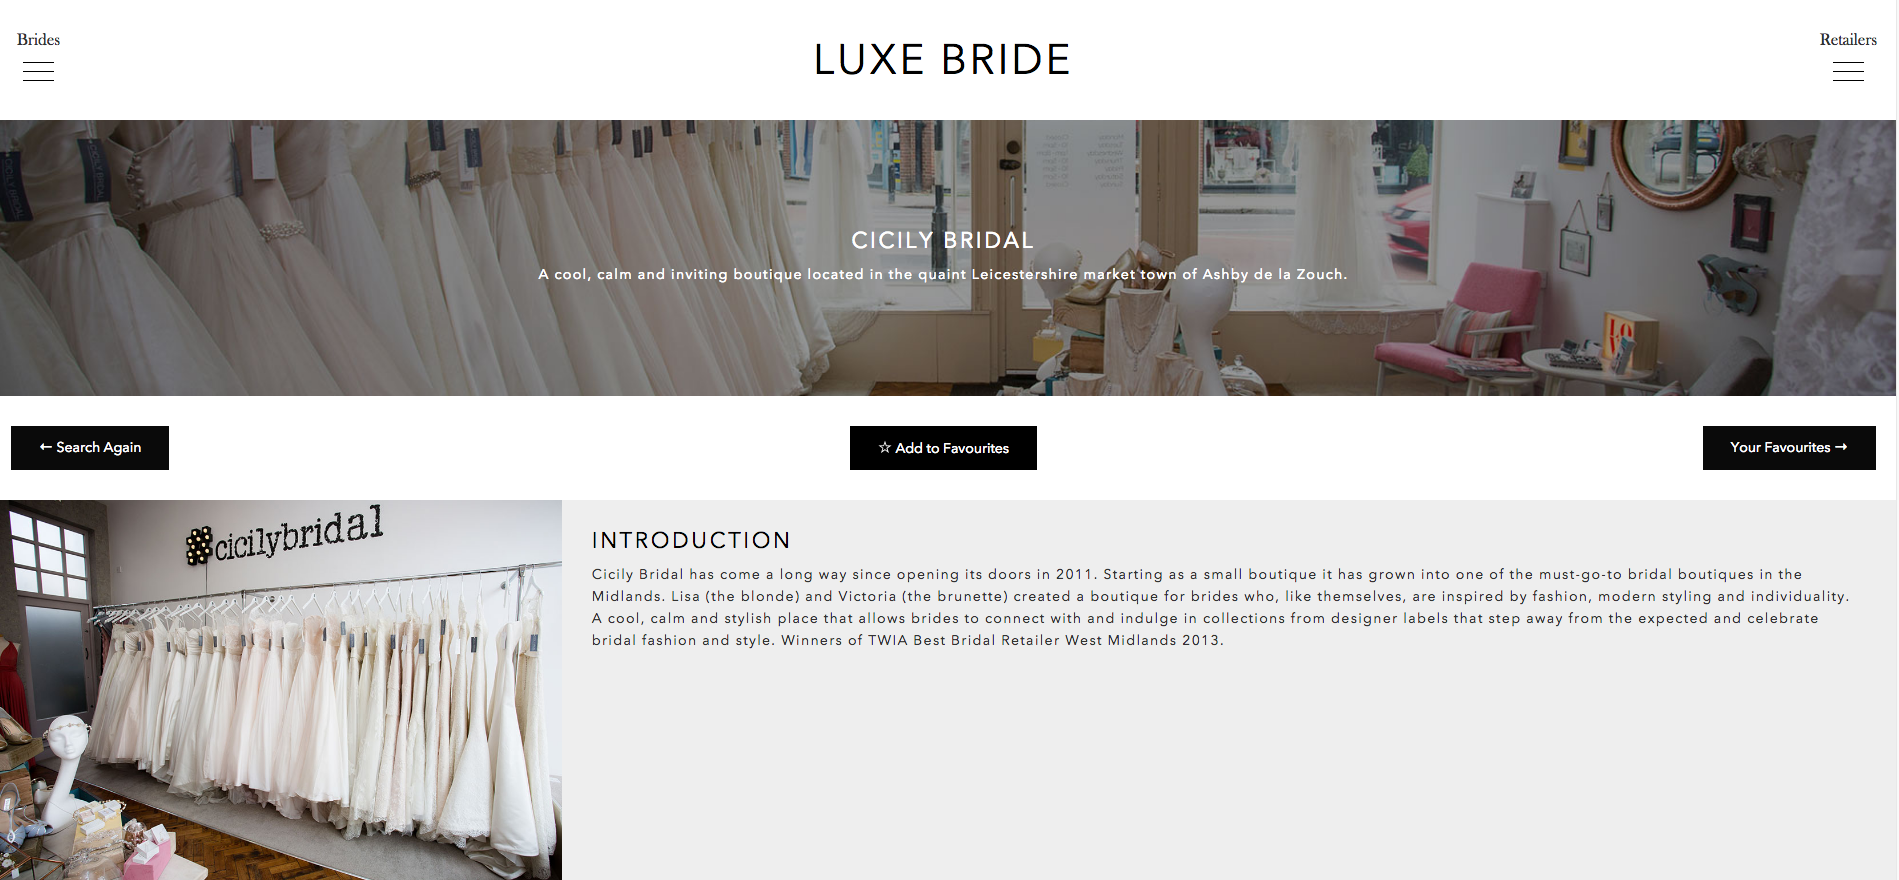 Cicily Bridal on Luxe Bride